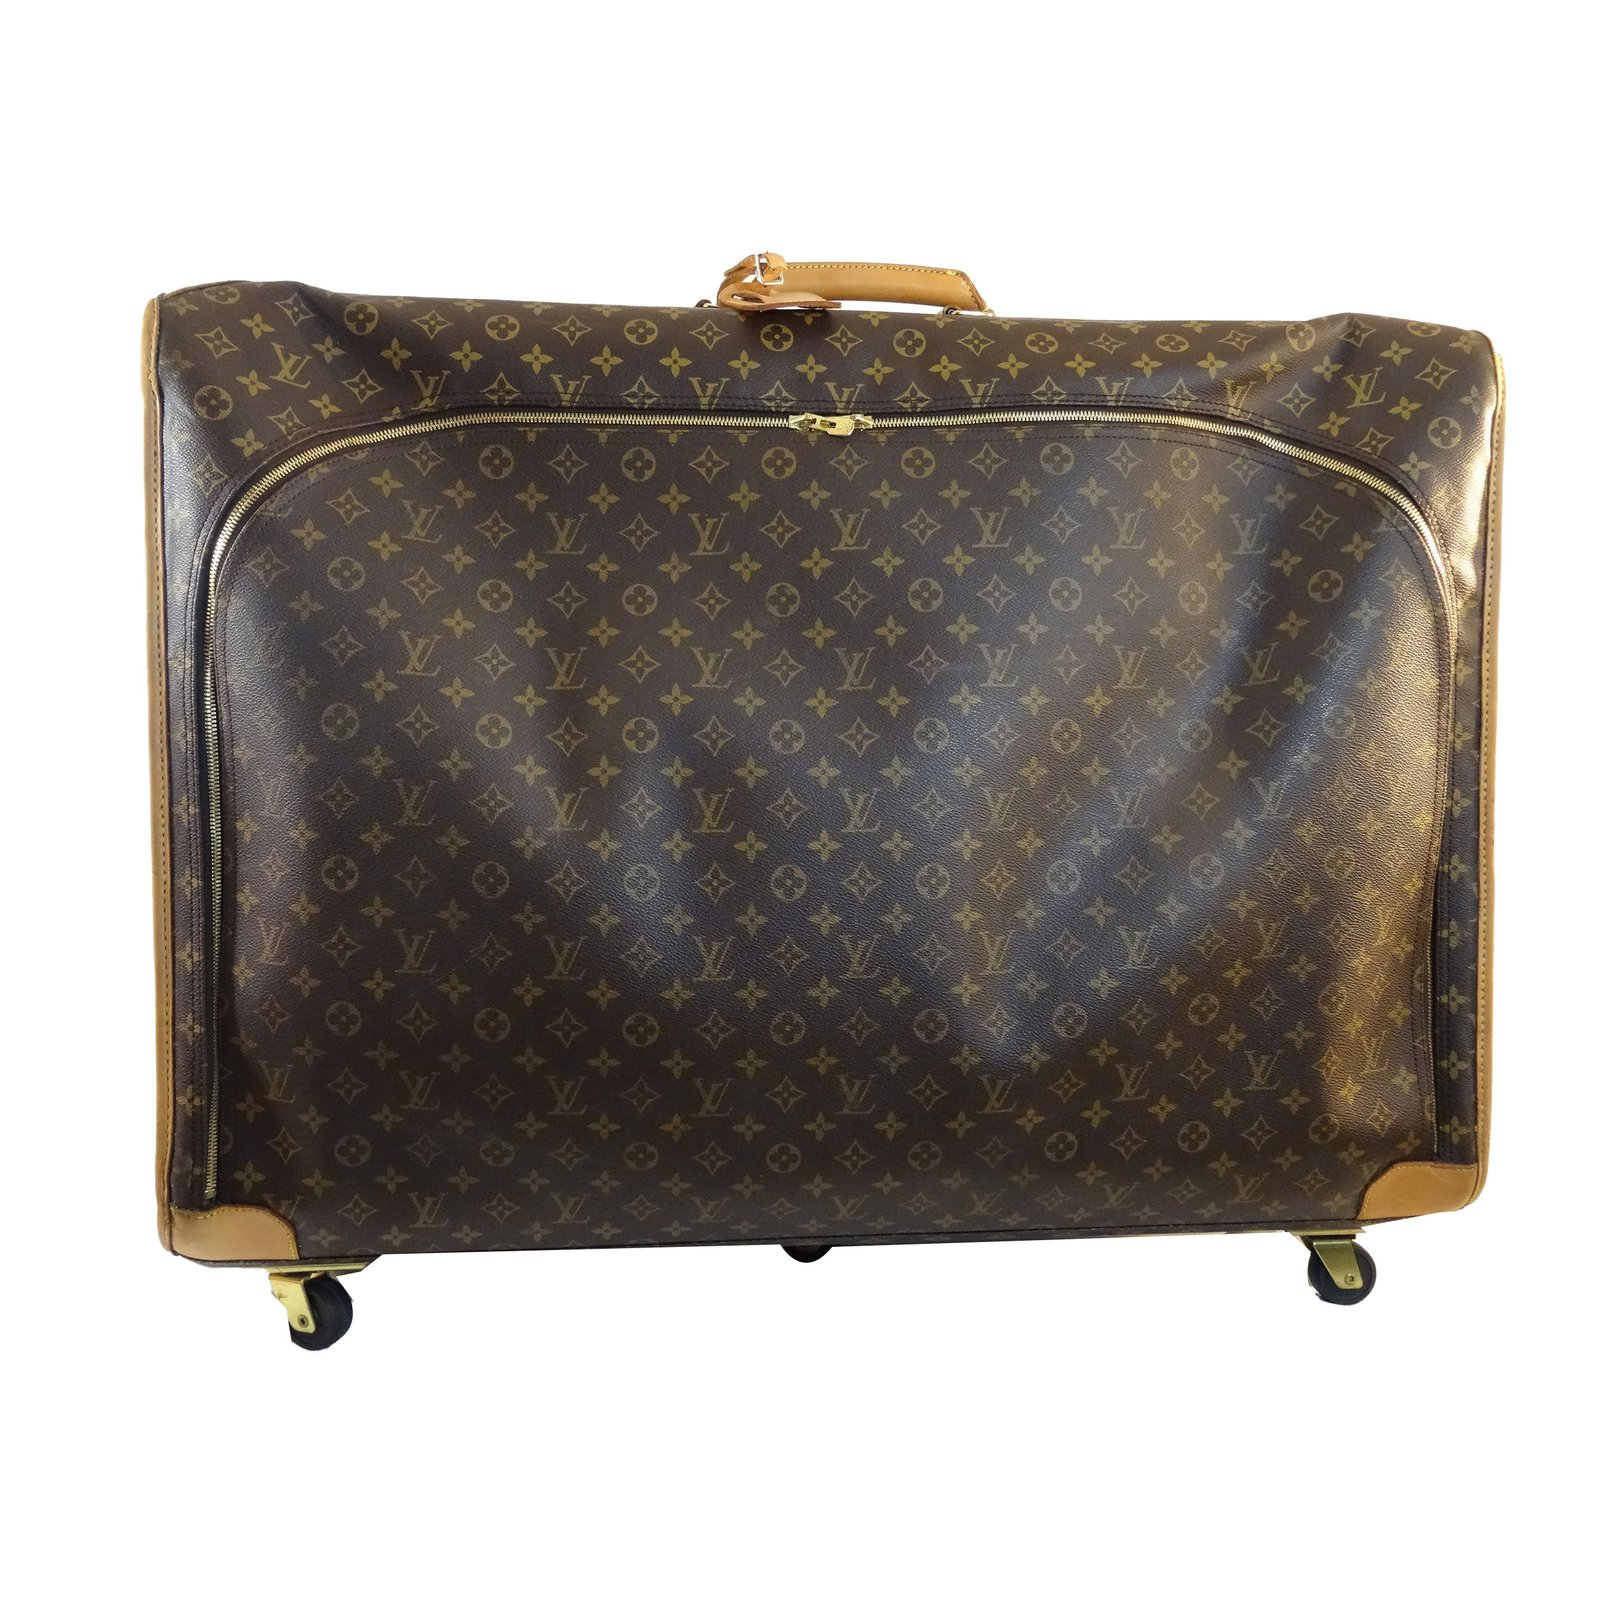 Louis Vuitton Travel Bag Travel Bag Leather Brown Other Ref 65061